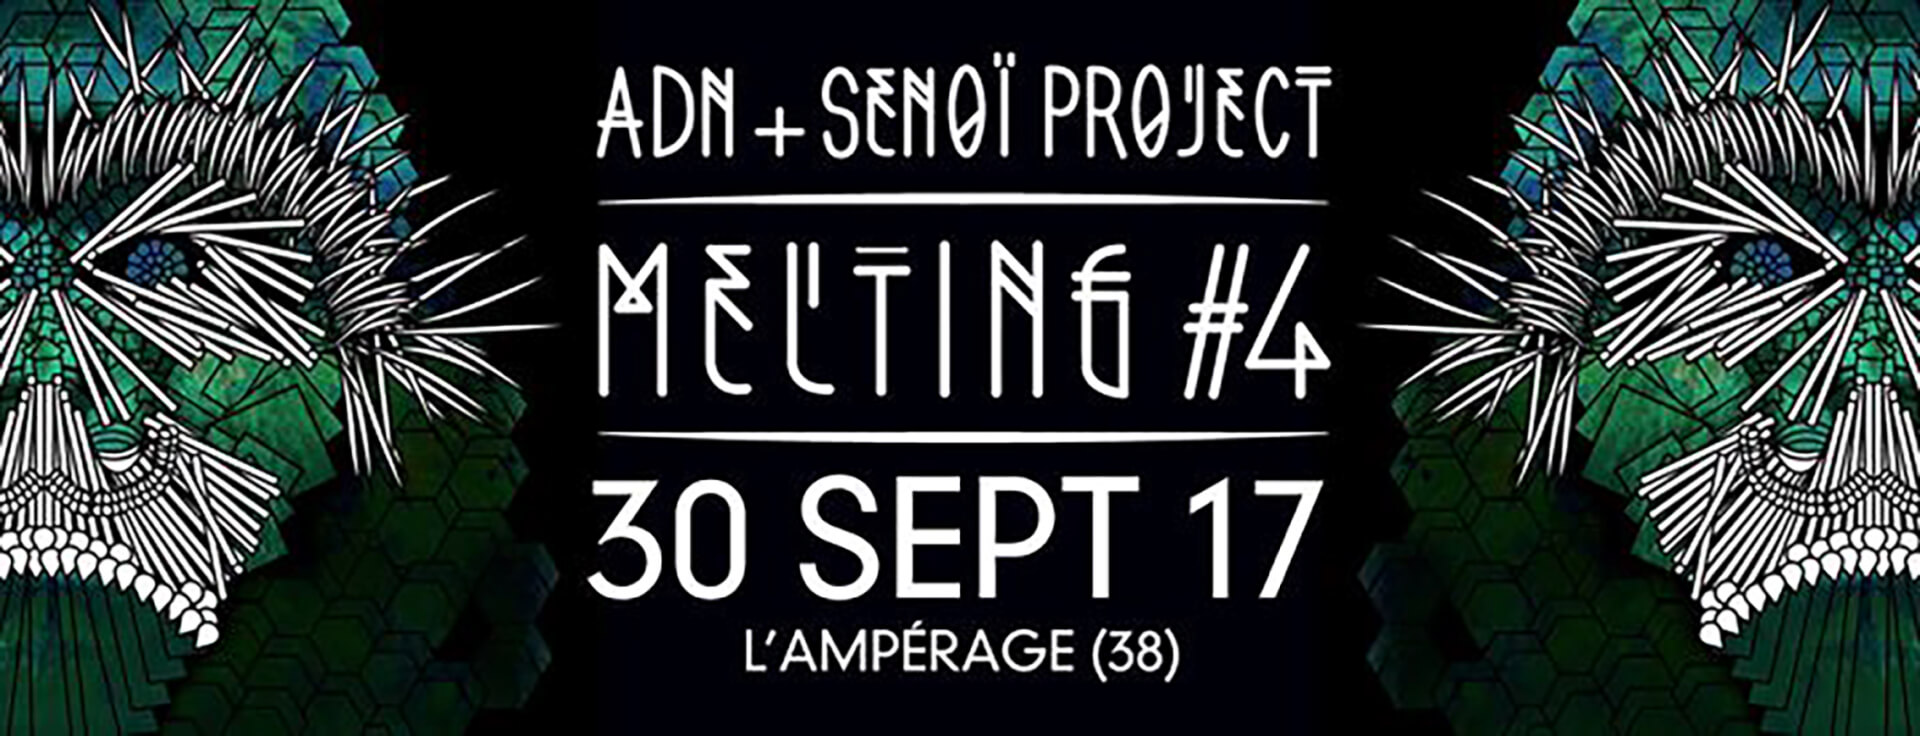 ►[EVENTS] MELTING #4 – ADN vs SENOÏ PROJECT – SAMEDI 30 SEPTEMBRE 2017